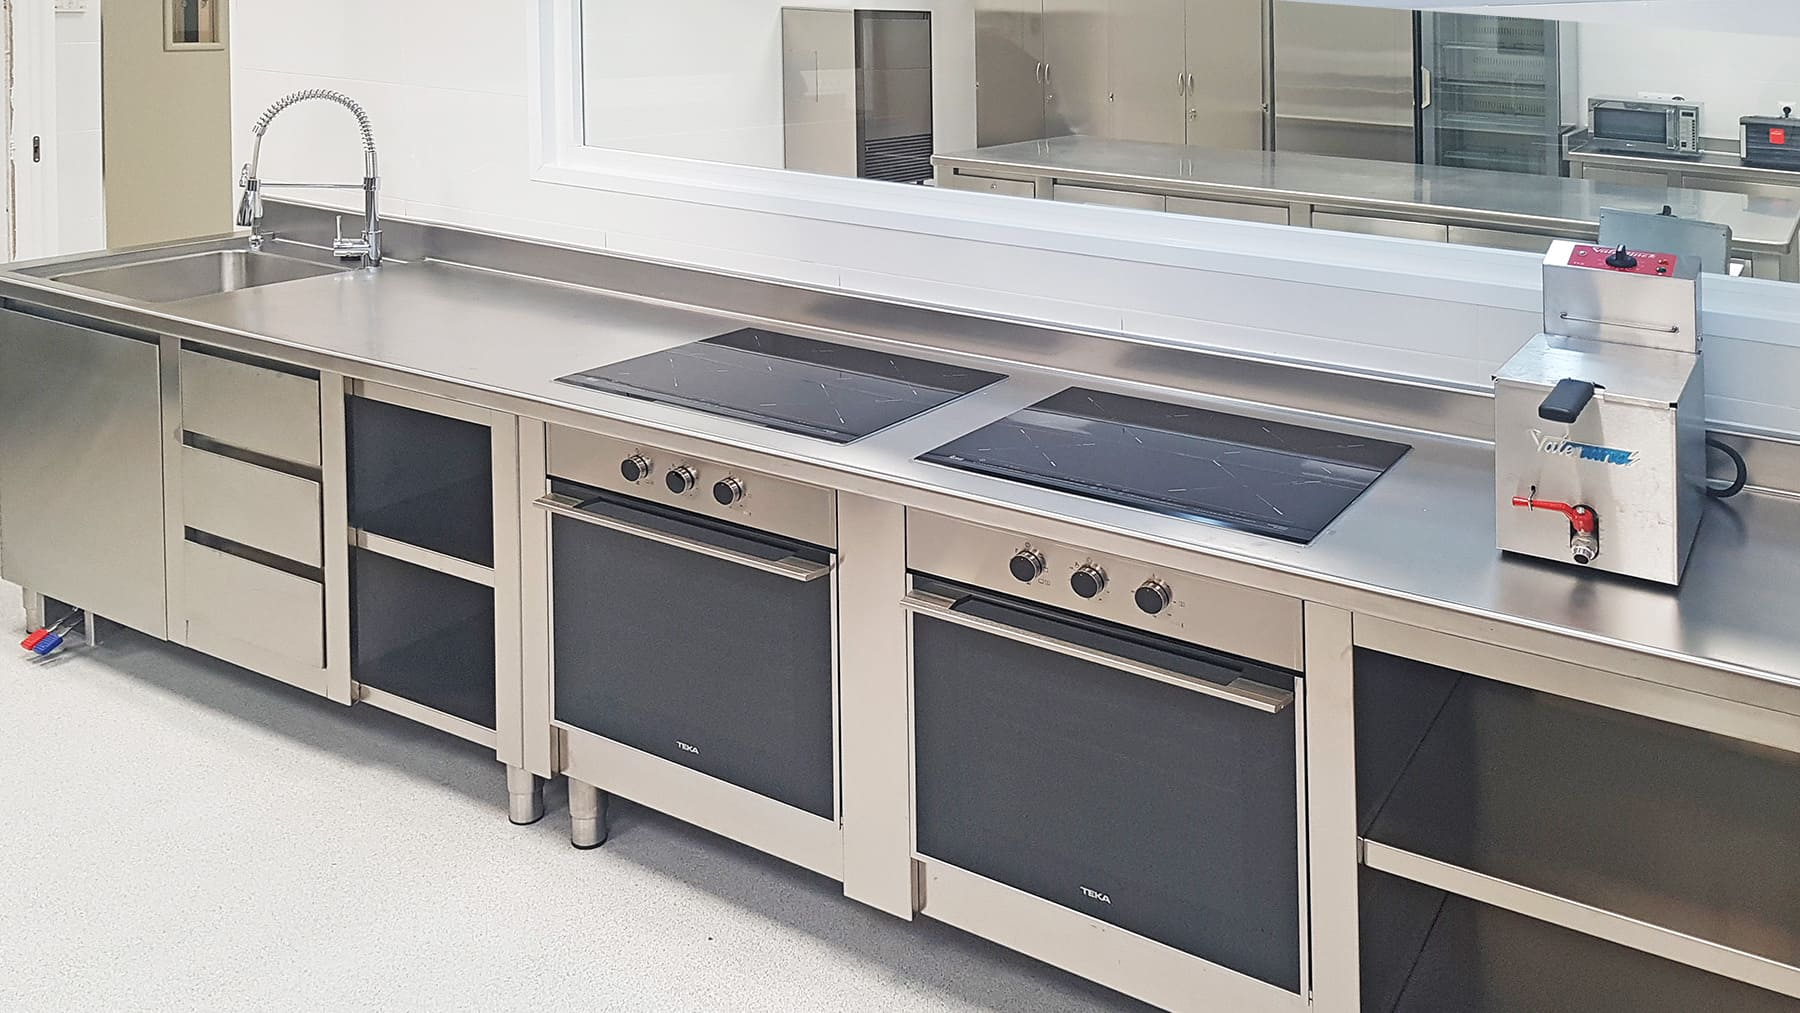 Horno-Encimera-y-Fregadero-Cocina-Industrial-Profesional-Universidad-Europea-de-Madrid - -SERHS-Projects